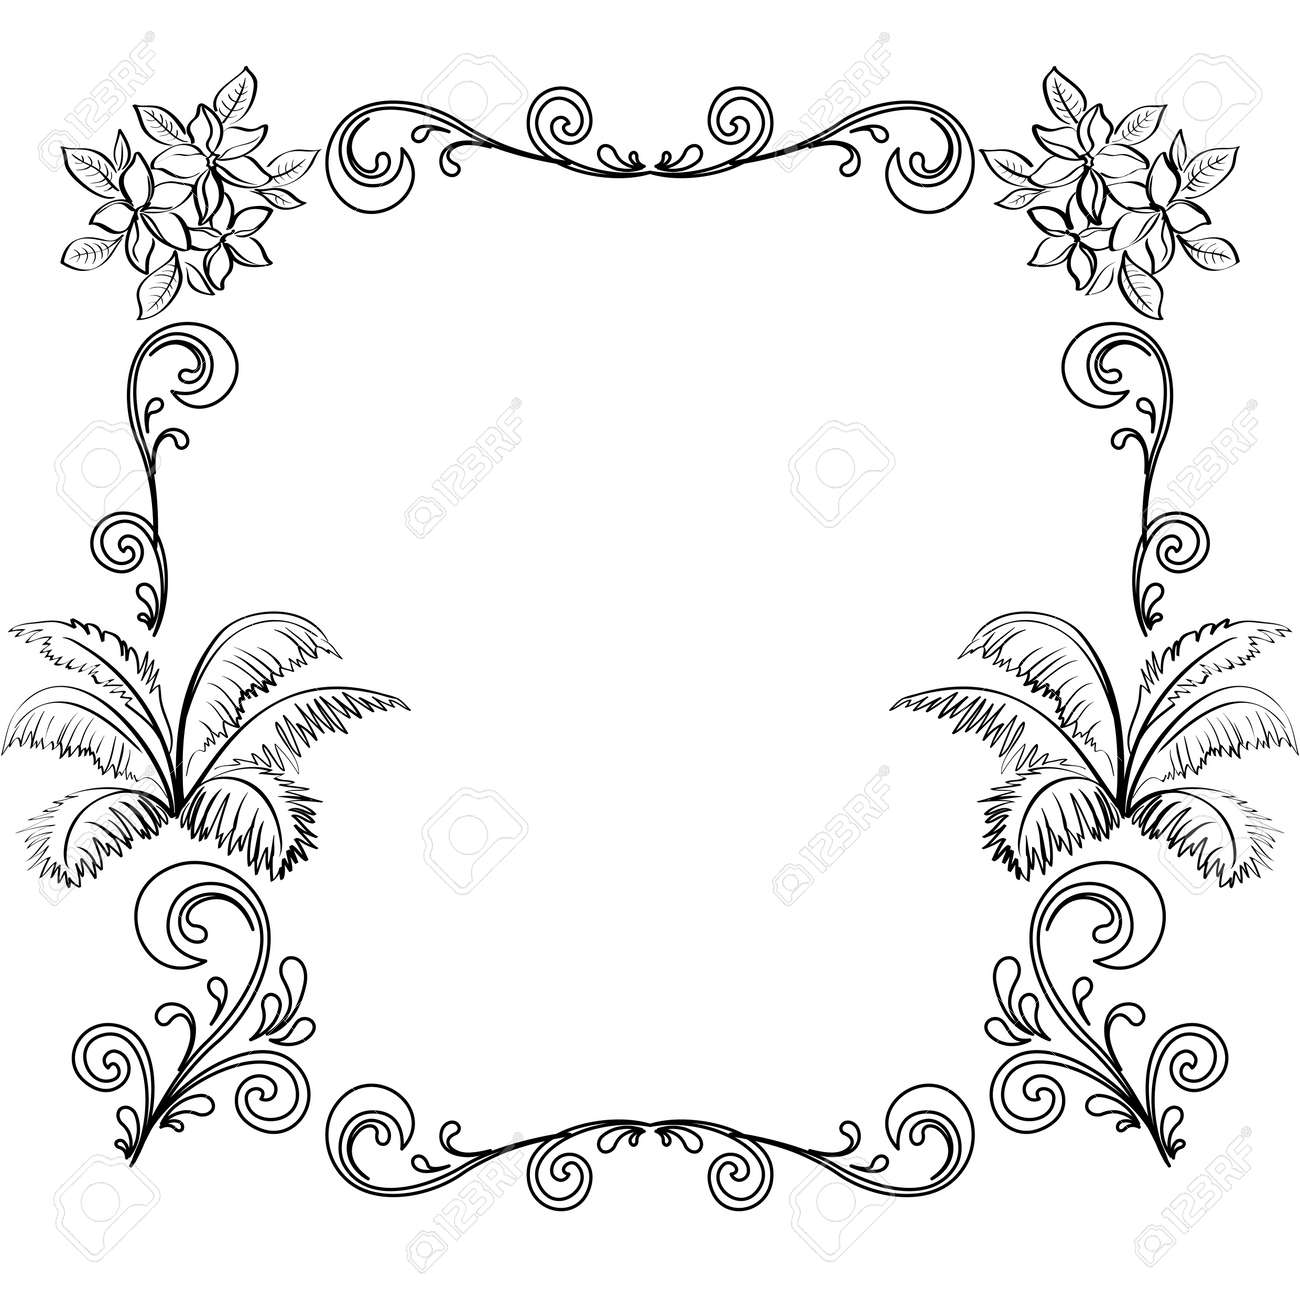 Abstract floral background, frame of flowers, black contour on white background - 19217628